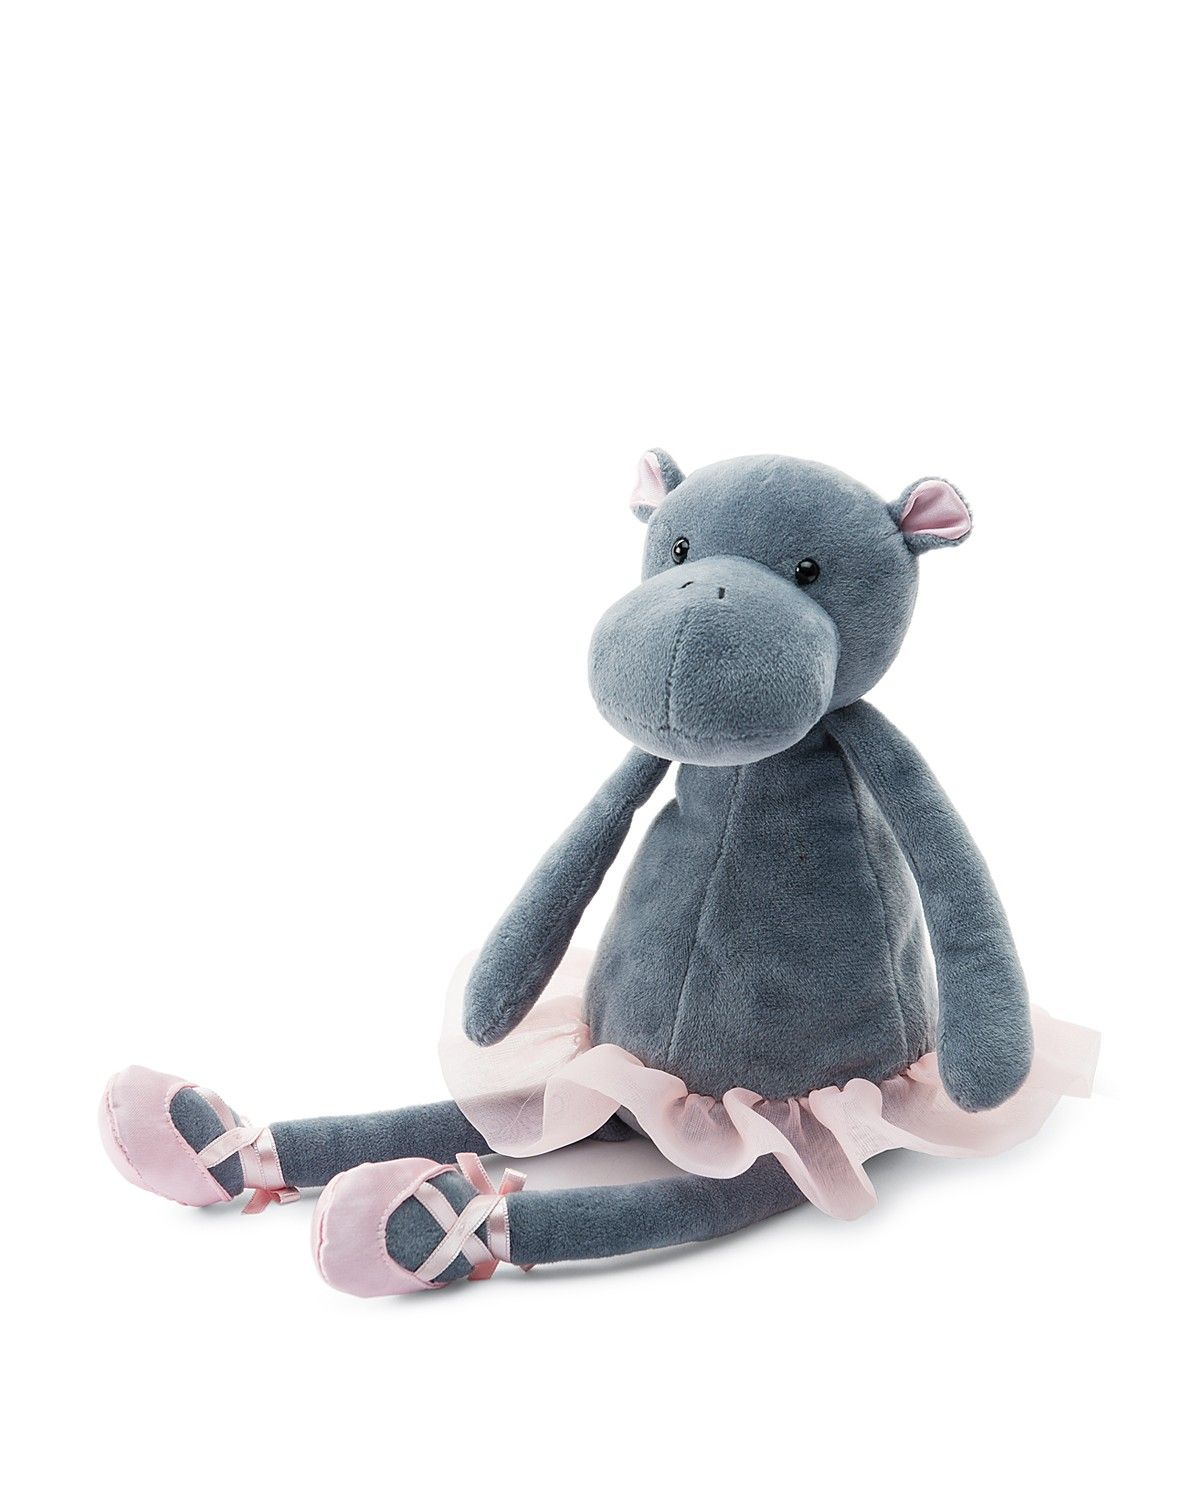 Pin By Liv On Jellycat With Images Jellycat Baby Shop Hippo